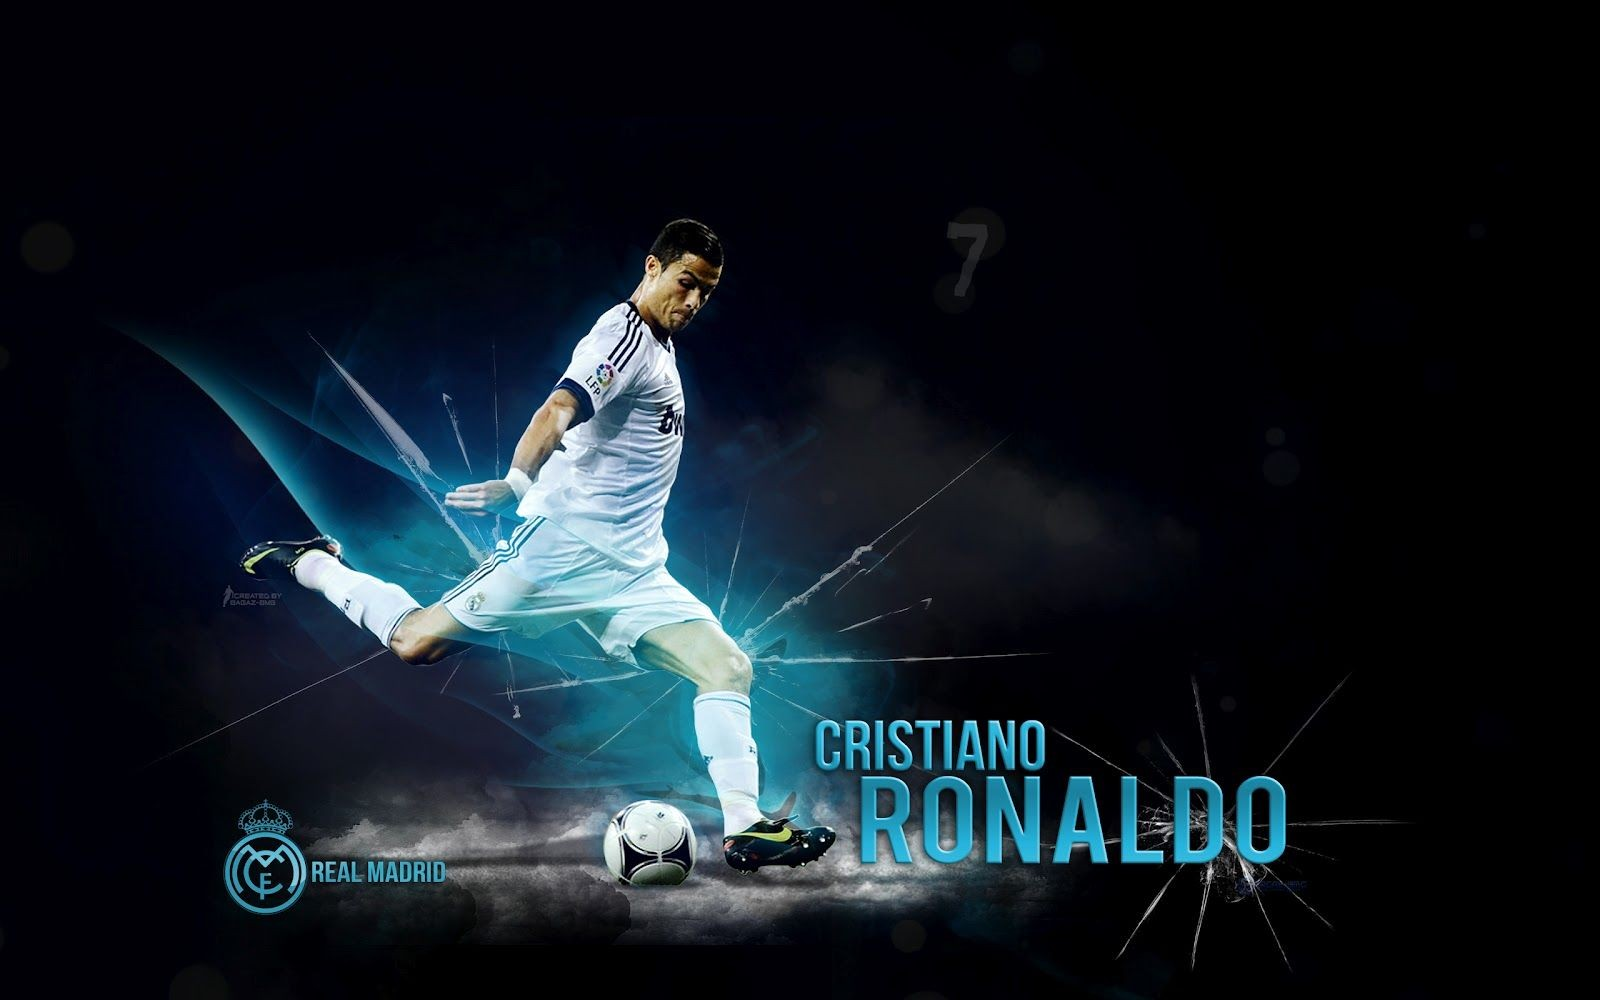 Hala Madrid Wallpapers Posted By Zoey Thompson